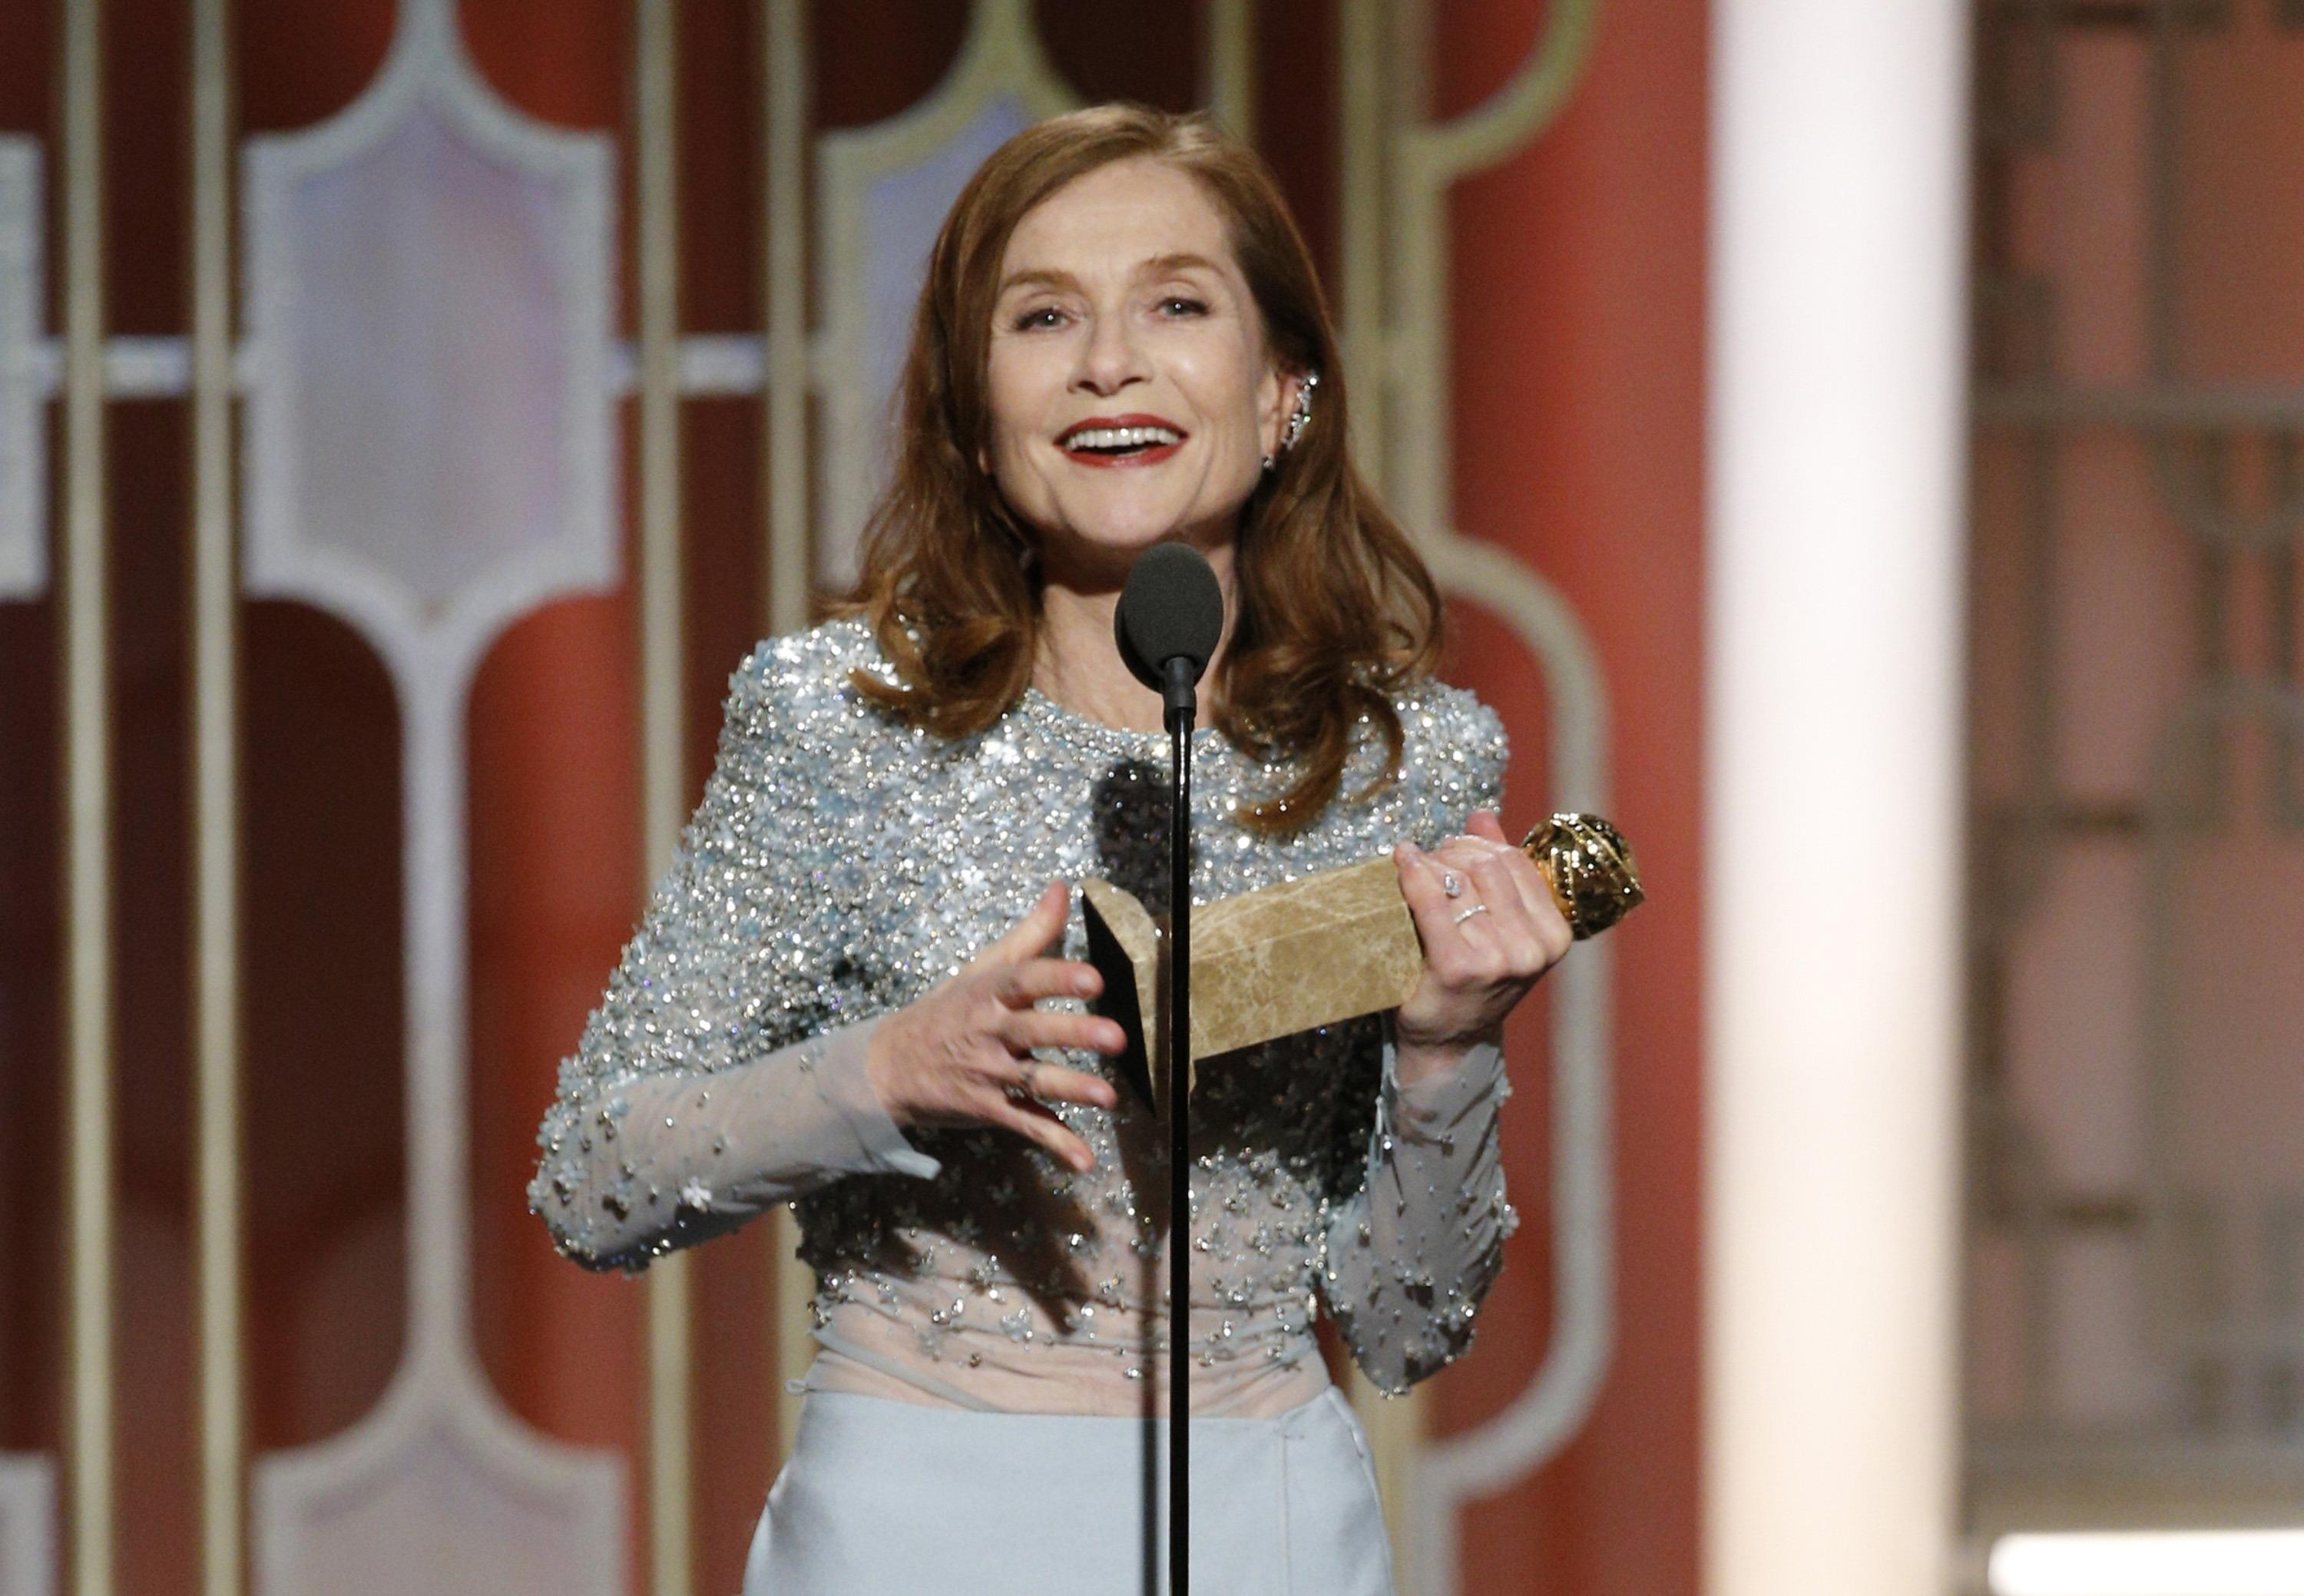 Golden Globes 2017: Isabelle Huppert Wins Best Actress For 'Elle'